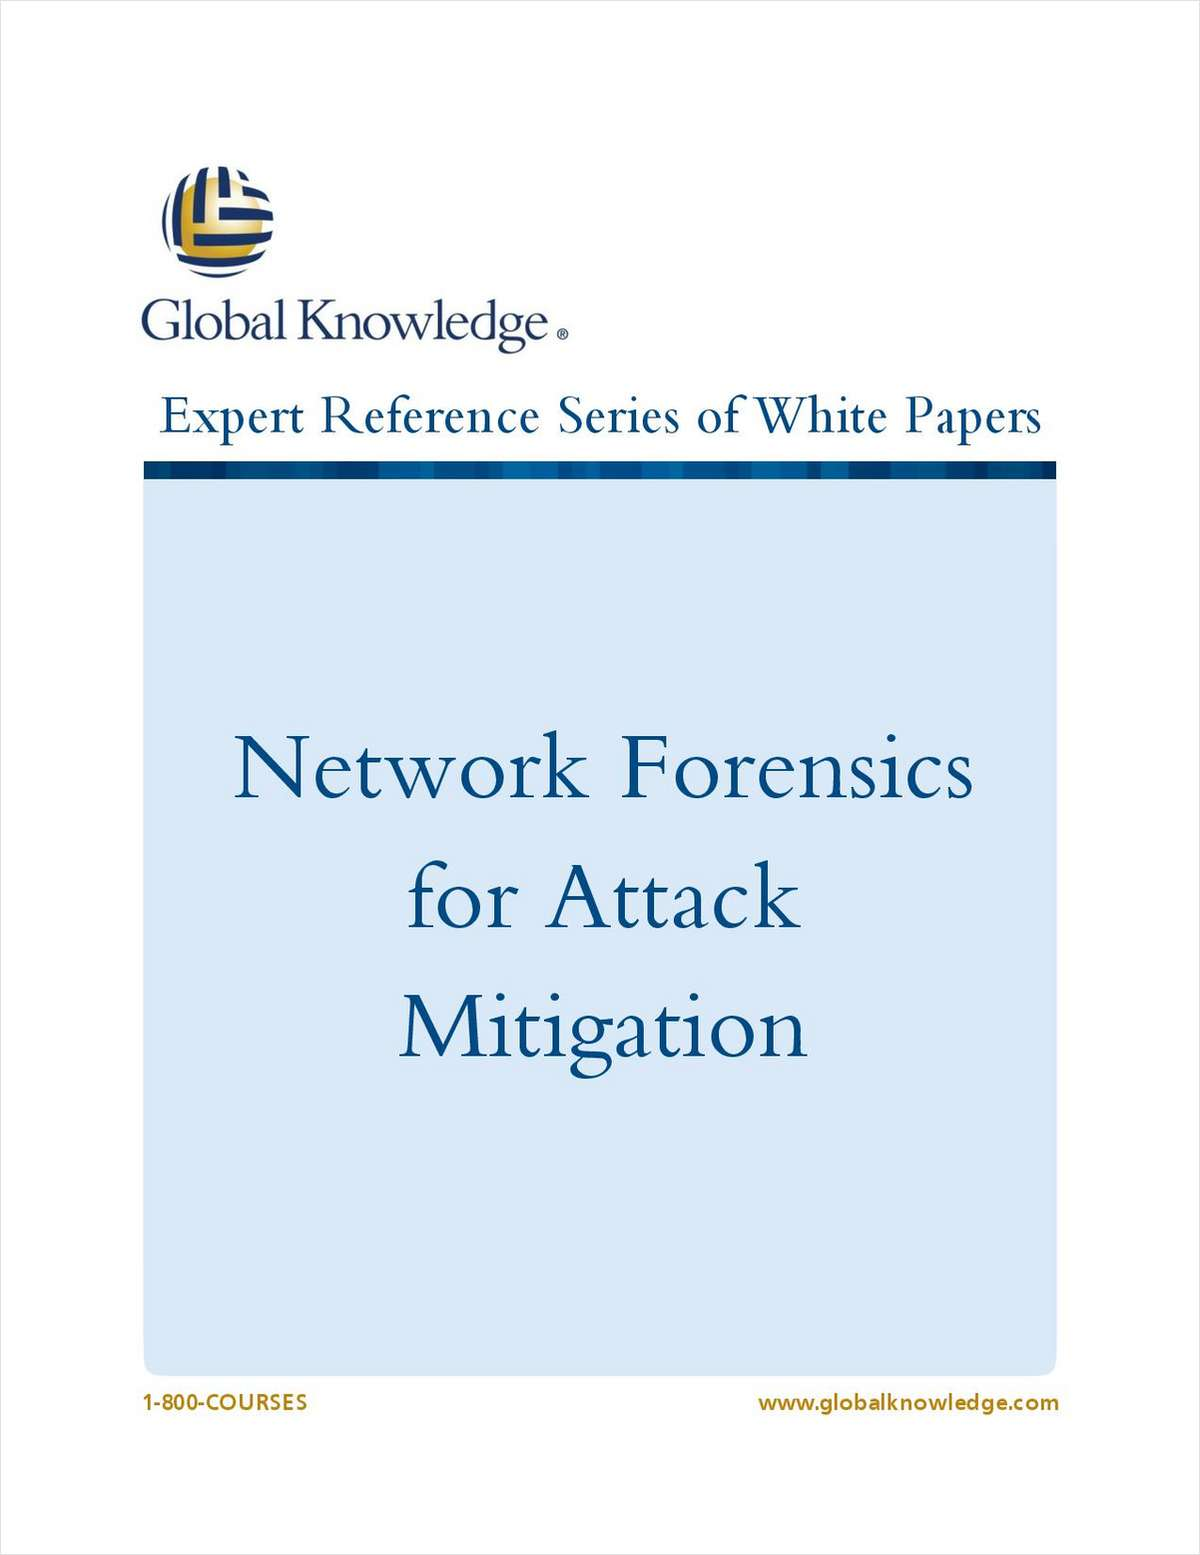 Network Forensics for Attack Mitigation